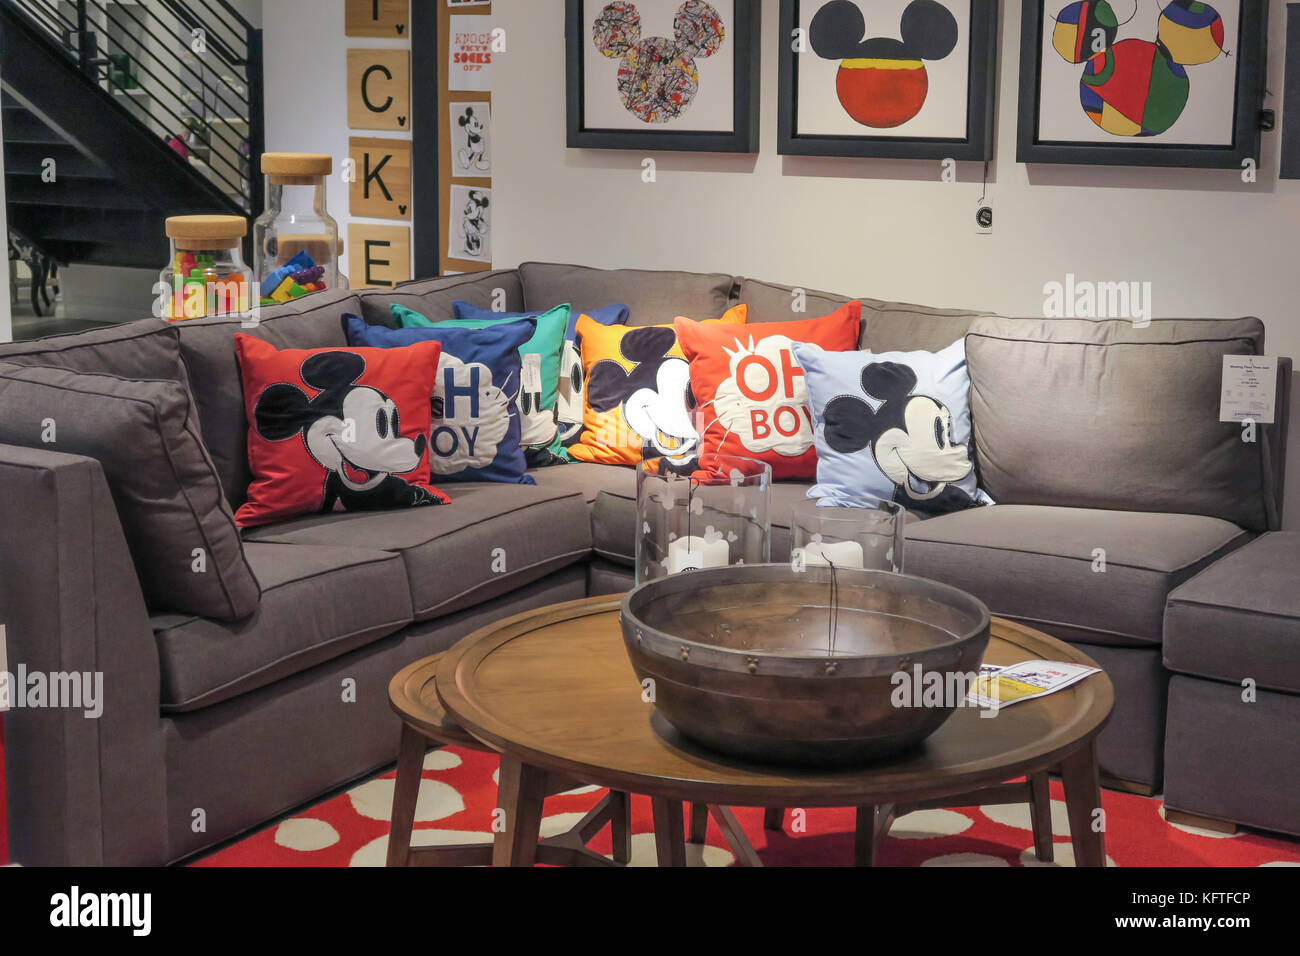 Ethan Allen Interiors Furniture Store, NYC, USA